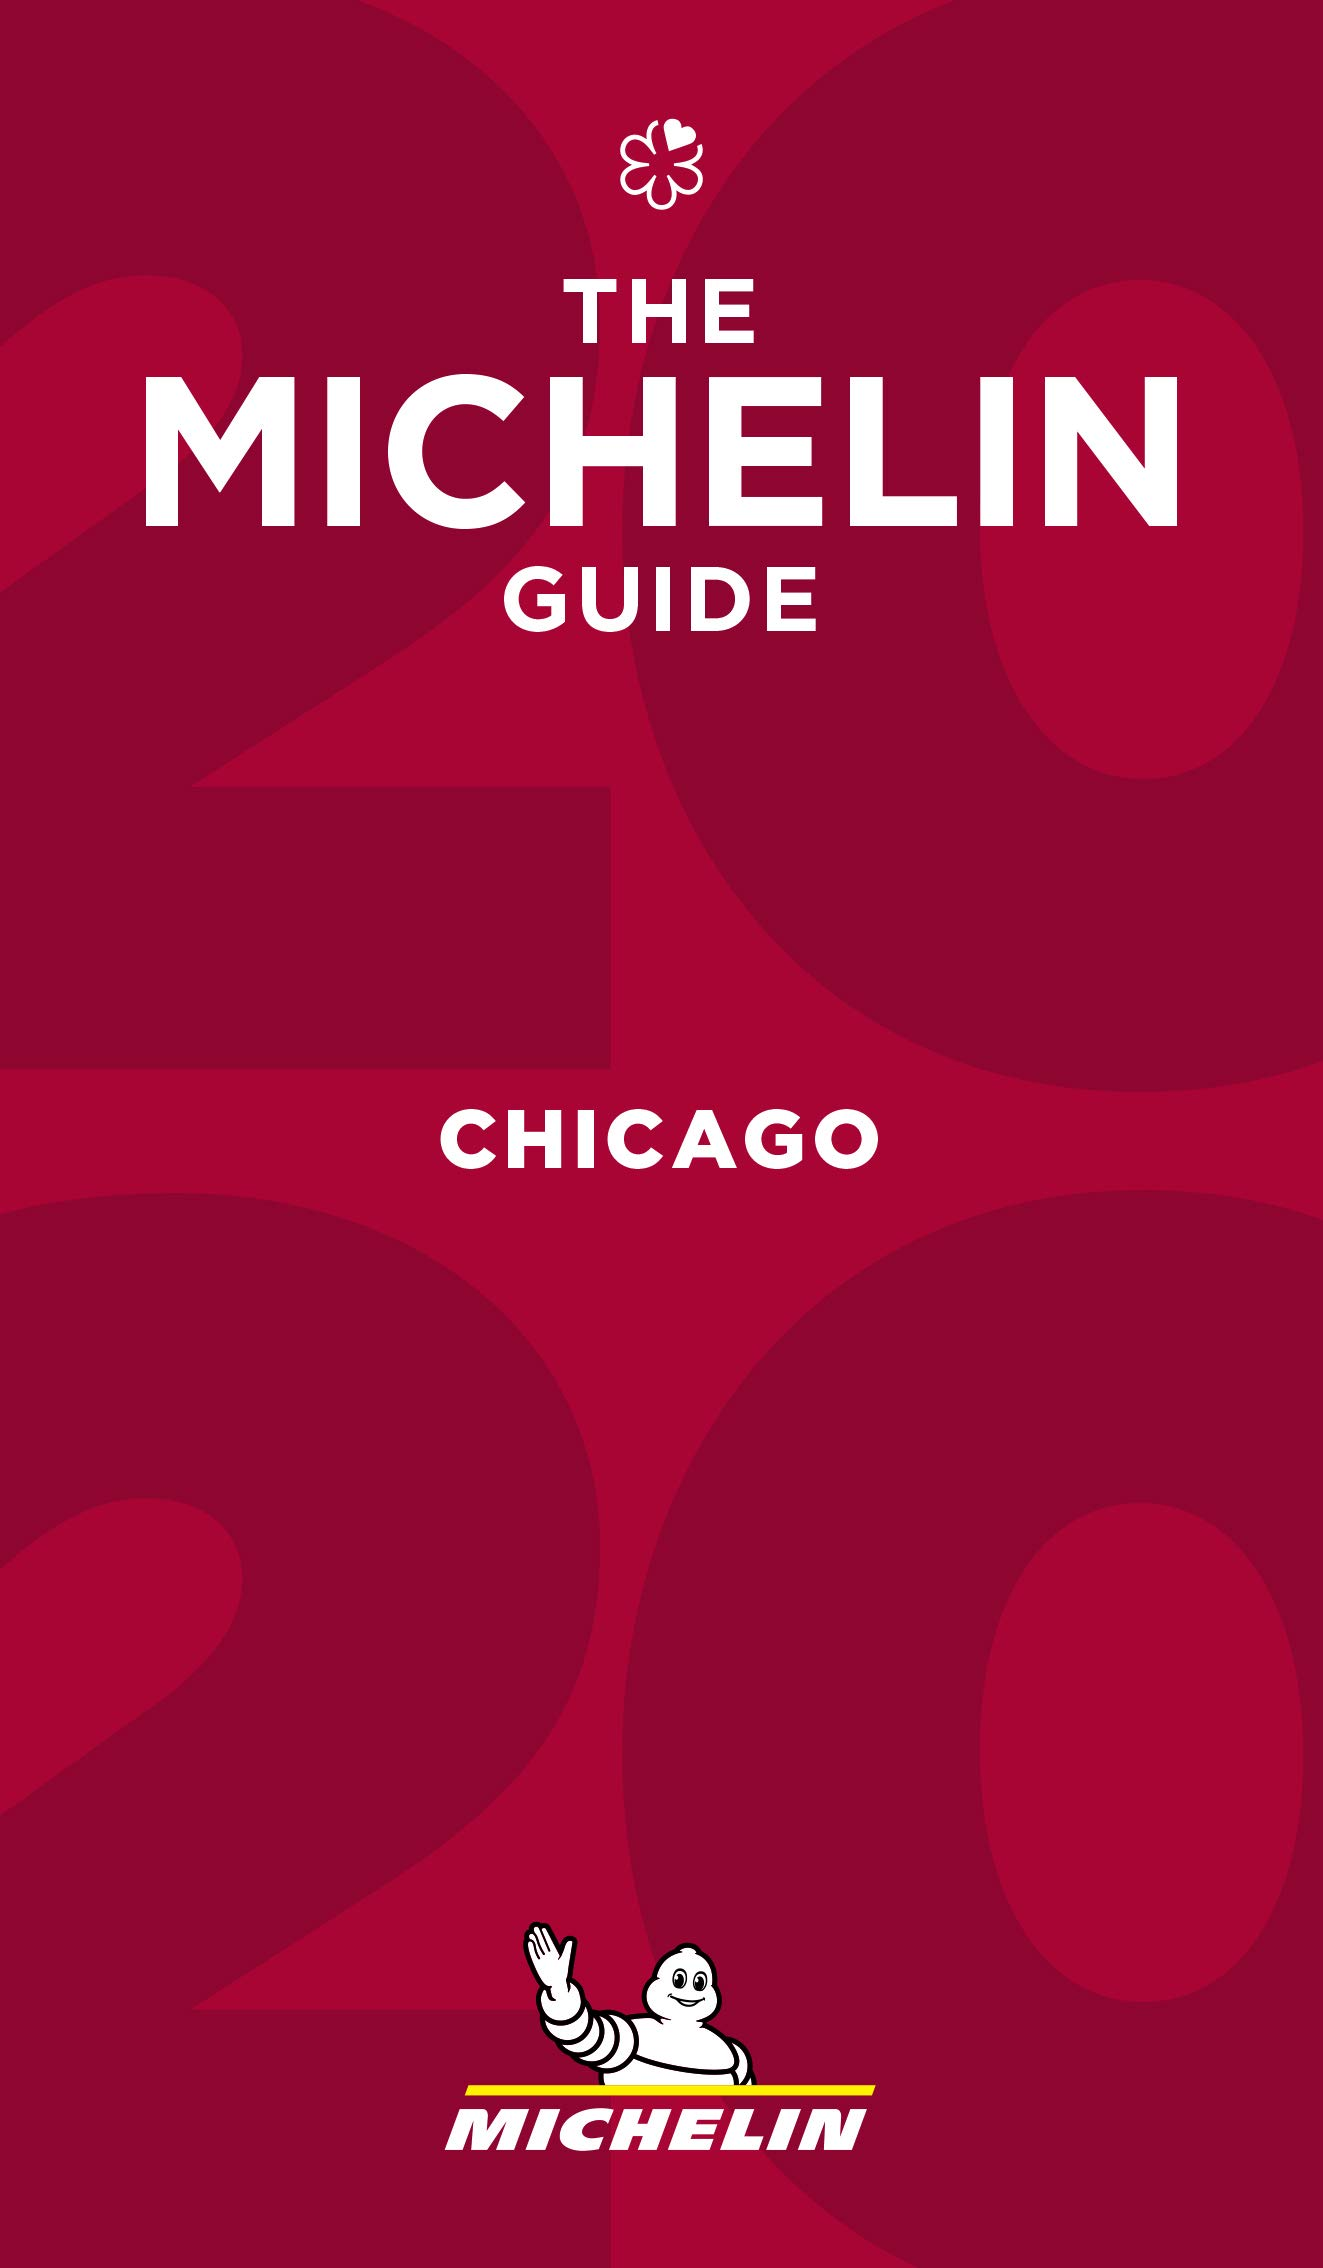 Best Restaurants Chicago 2020 MICHELIN Guide Chicago 2020: Restauraunt Guide (Michelin Red Guide